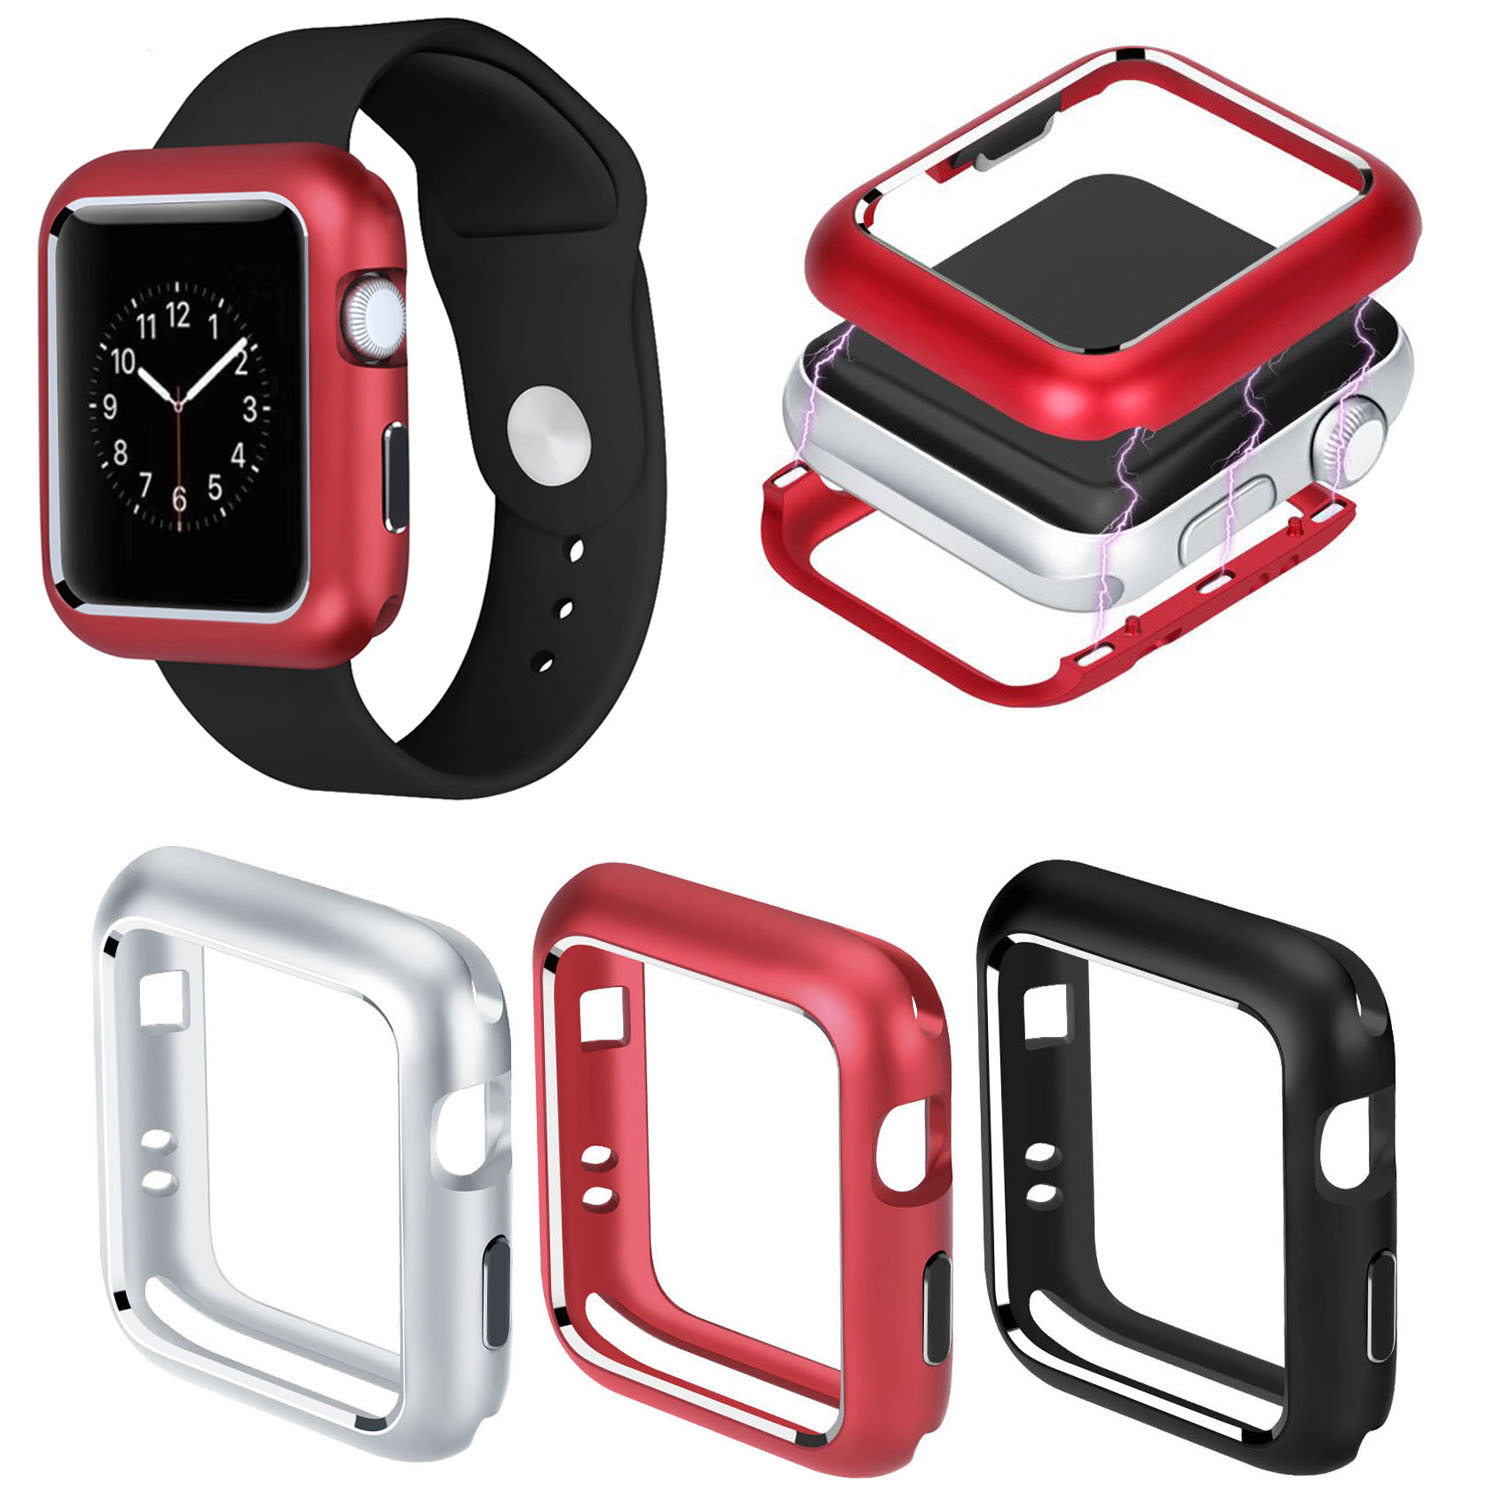 Aluminum Alloy Metal Cover for Apple Watch Case 40 44 mm 38 42 mm Magnetic Full Protection Cover for iWatch Series 5 4 3 2 Case image